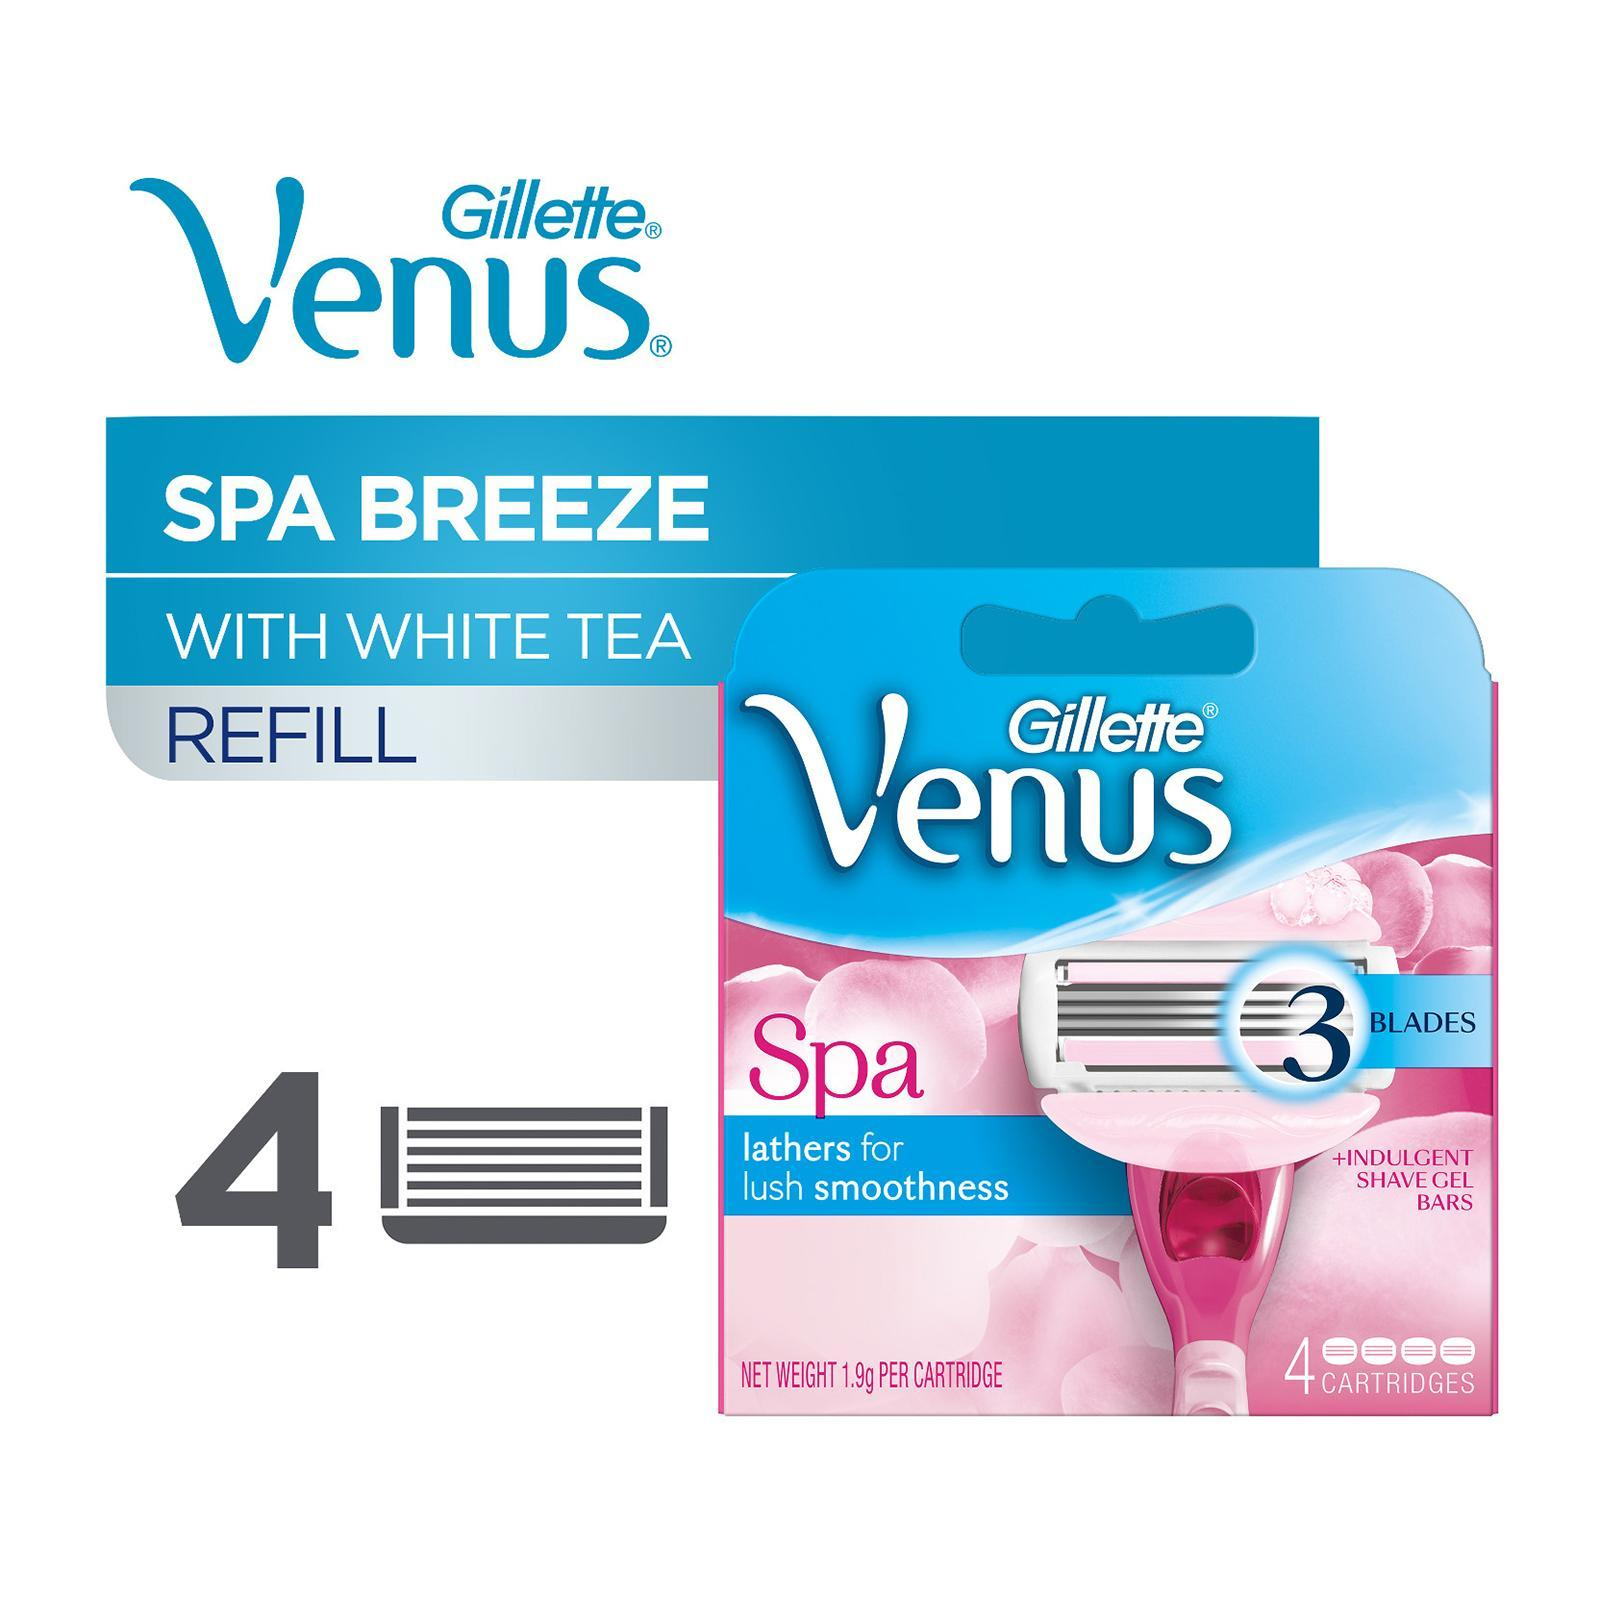 GILLETTE VENUS venus spa breeze razor cartridges 4s